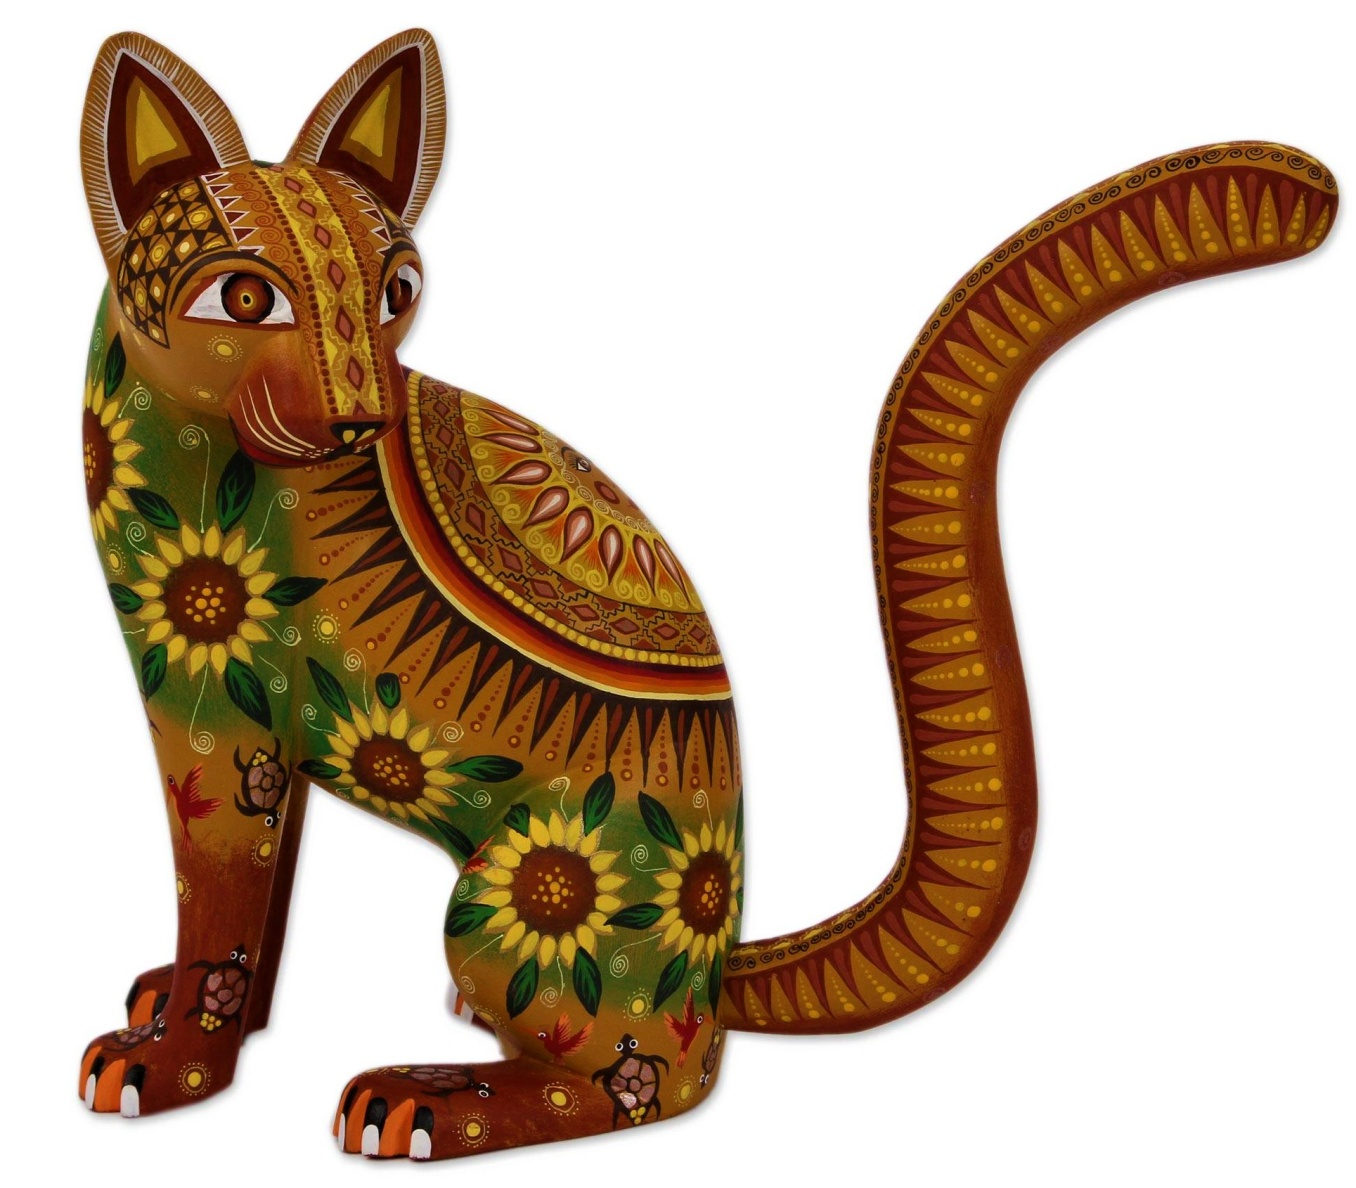 Cat sculpture unicef mexico home decor cropped.jpg